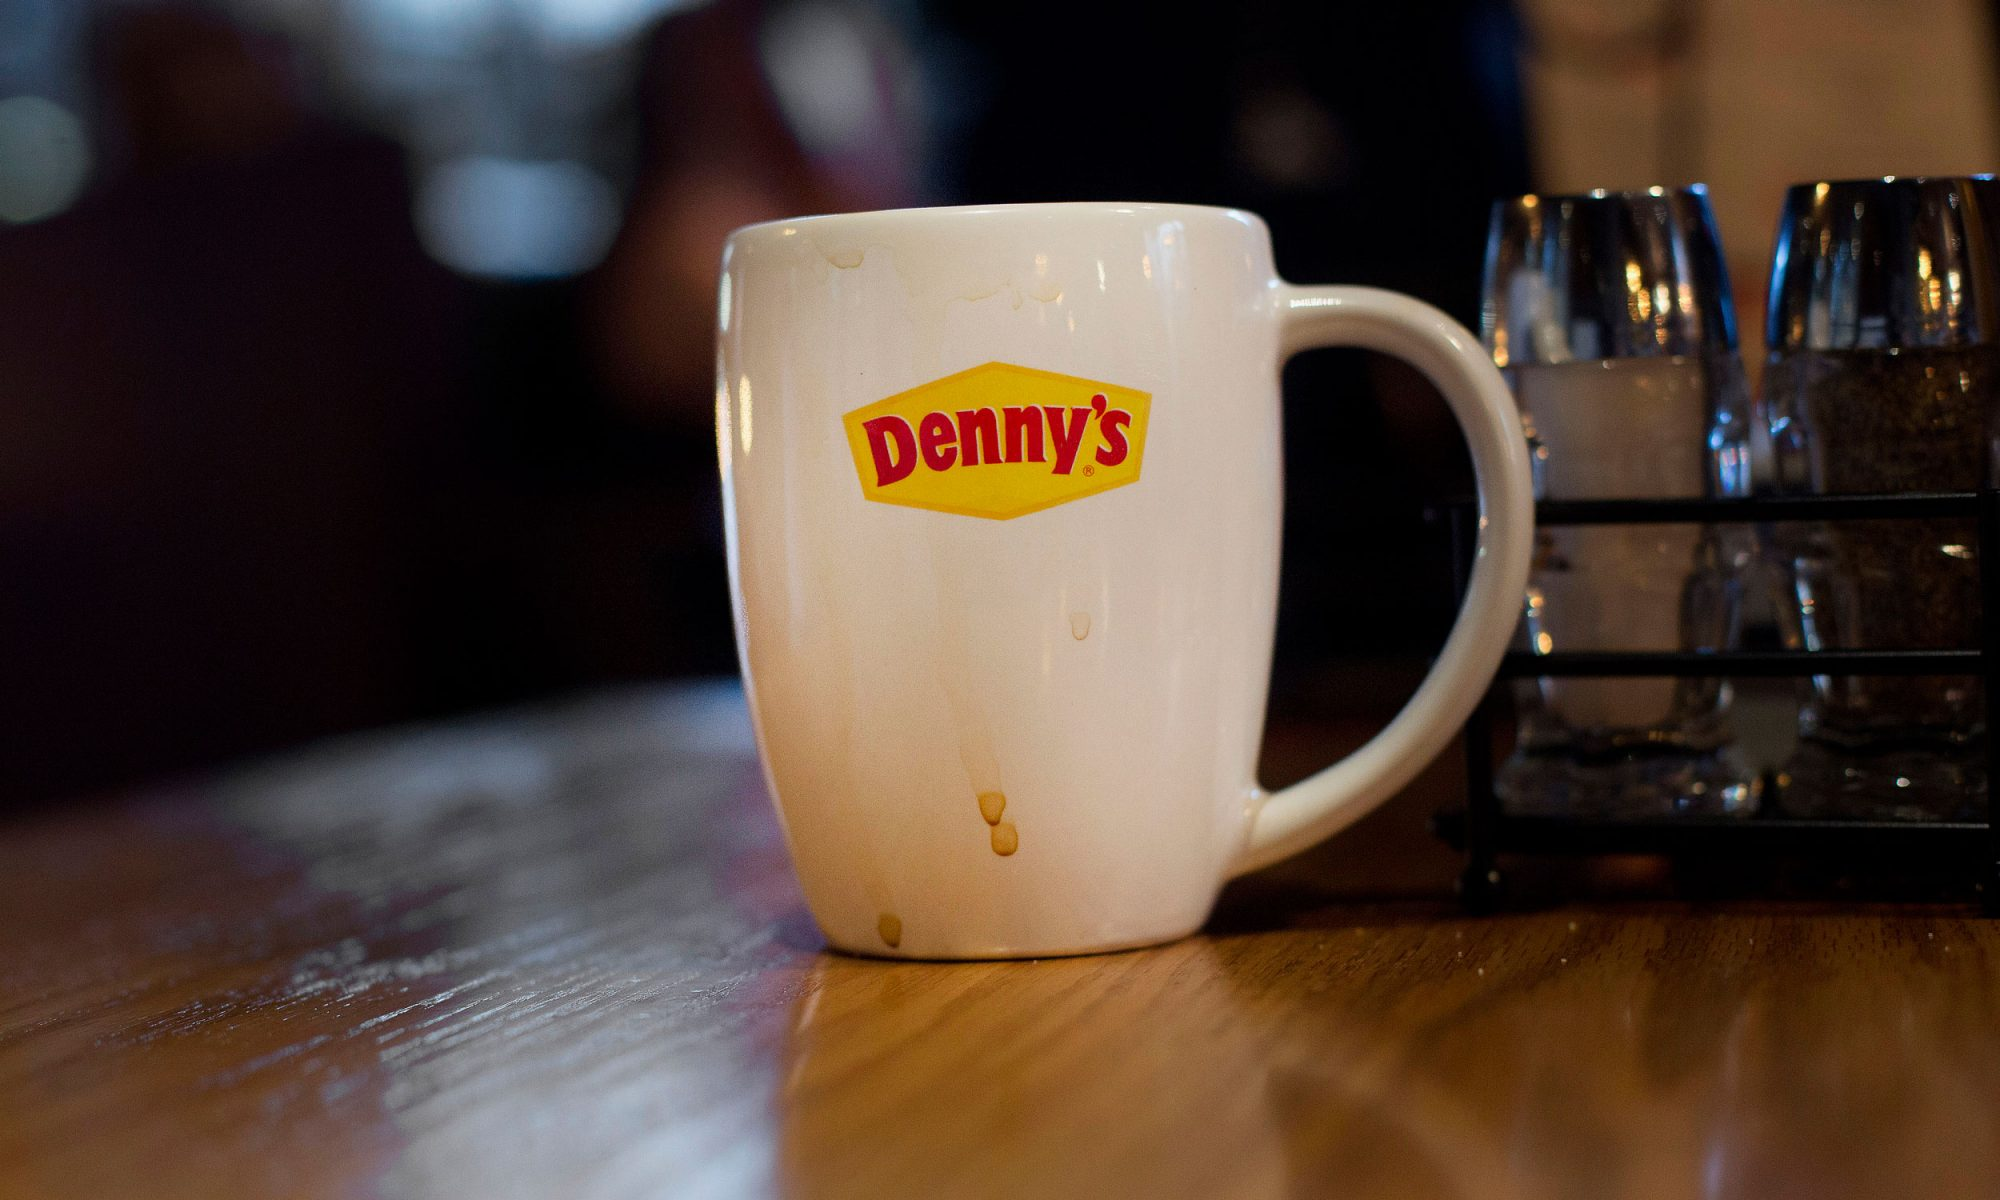 denny's coffee cup